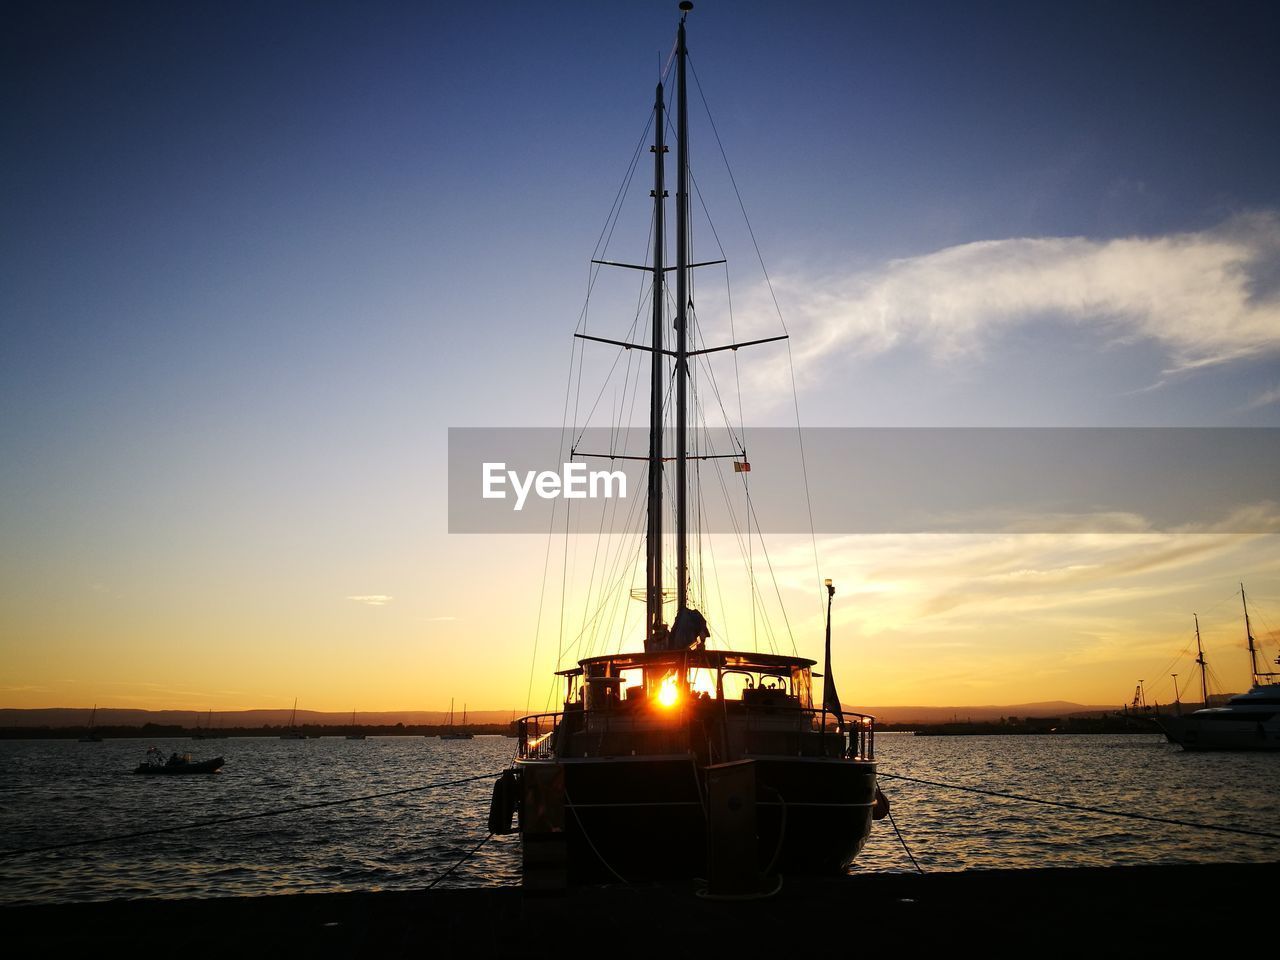 nautical vessel, water, sky, sunset, sea, transportation, mode of transportation, mast, sailboat, pole, beauty in nature, scenics - nature, sailing, nature, sun, silhouette, no people, ship, travel, outdoors, passenger craft, yacht